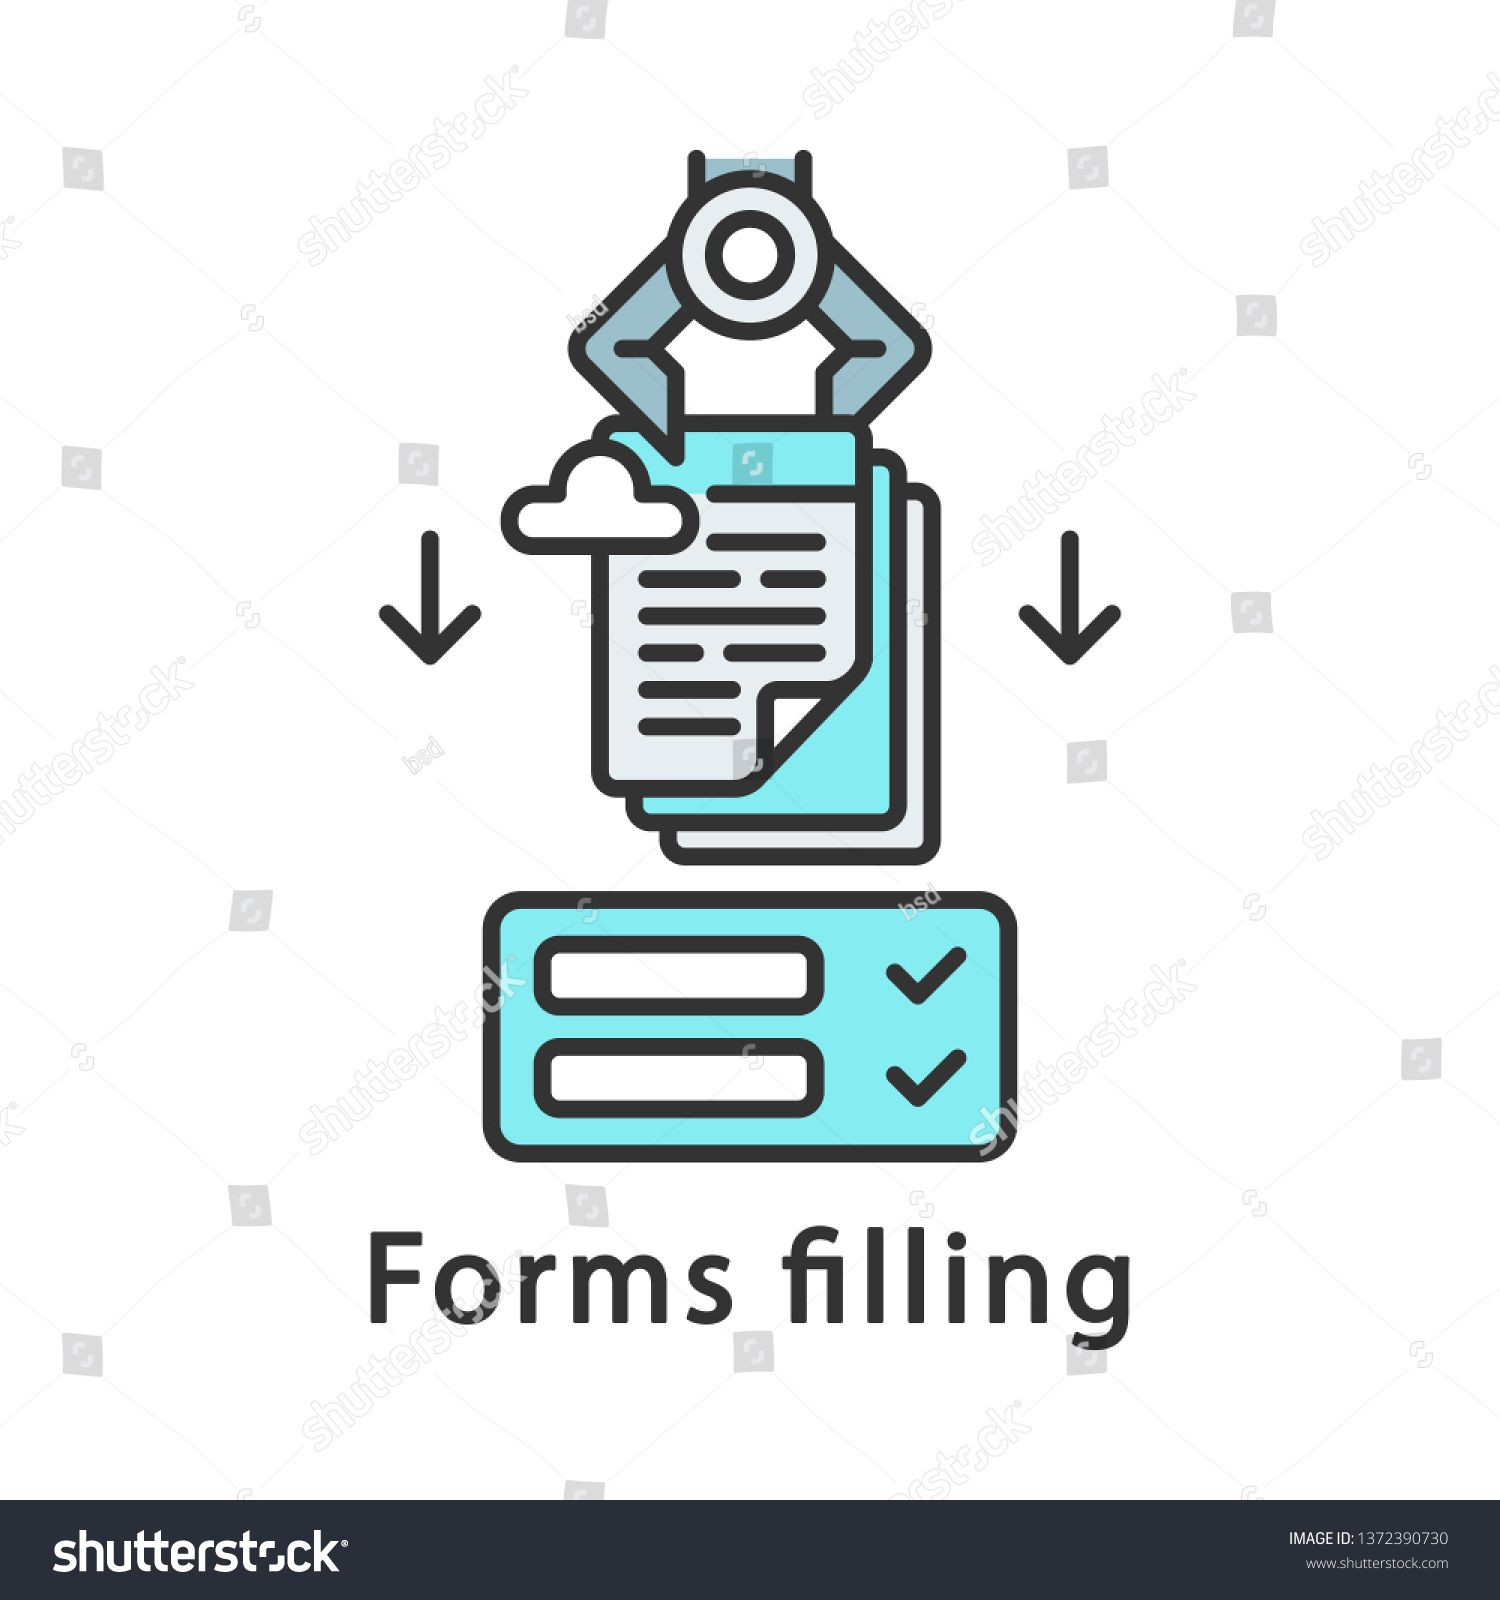 Forms filling color icon. Robot inputting data to forms